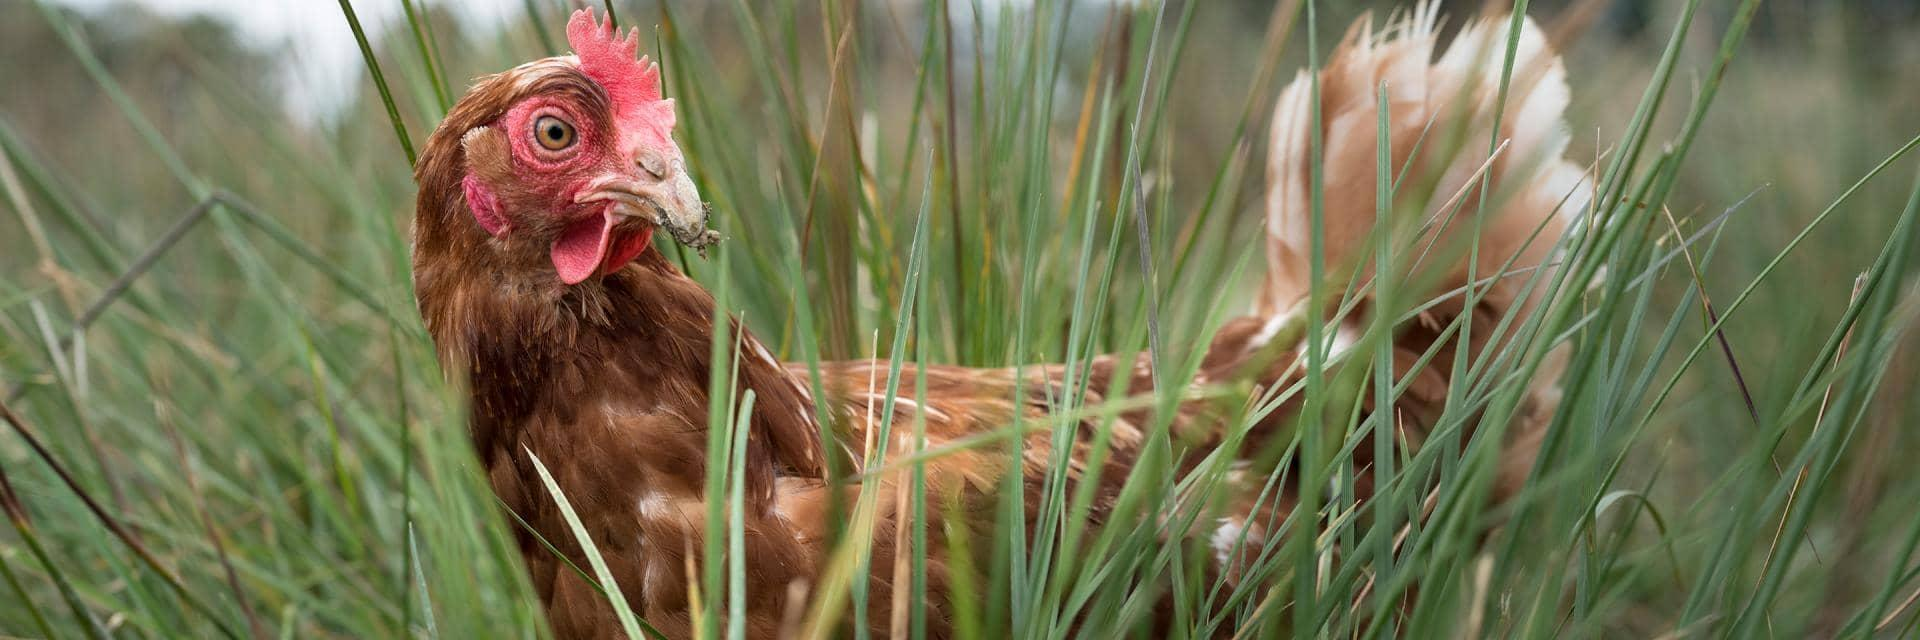 A lone chicken surrounded by grass in a field